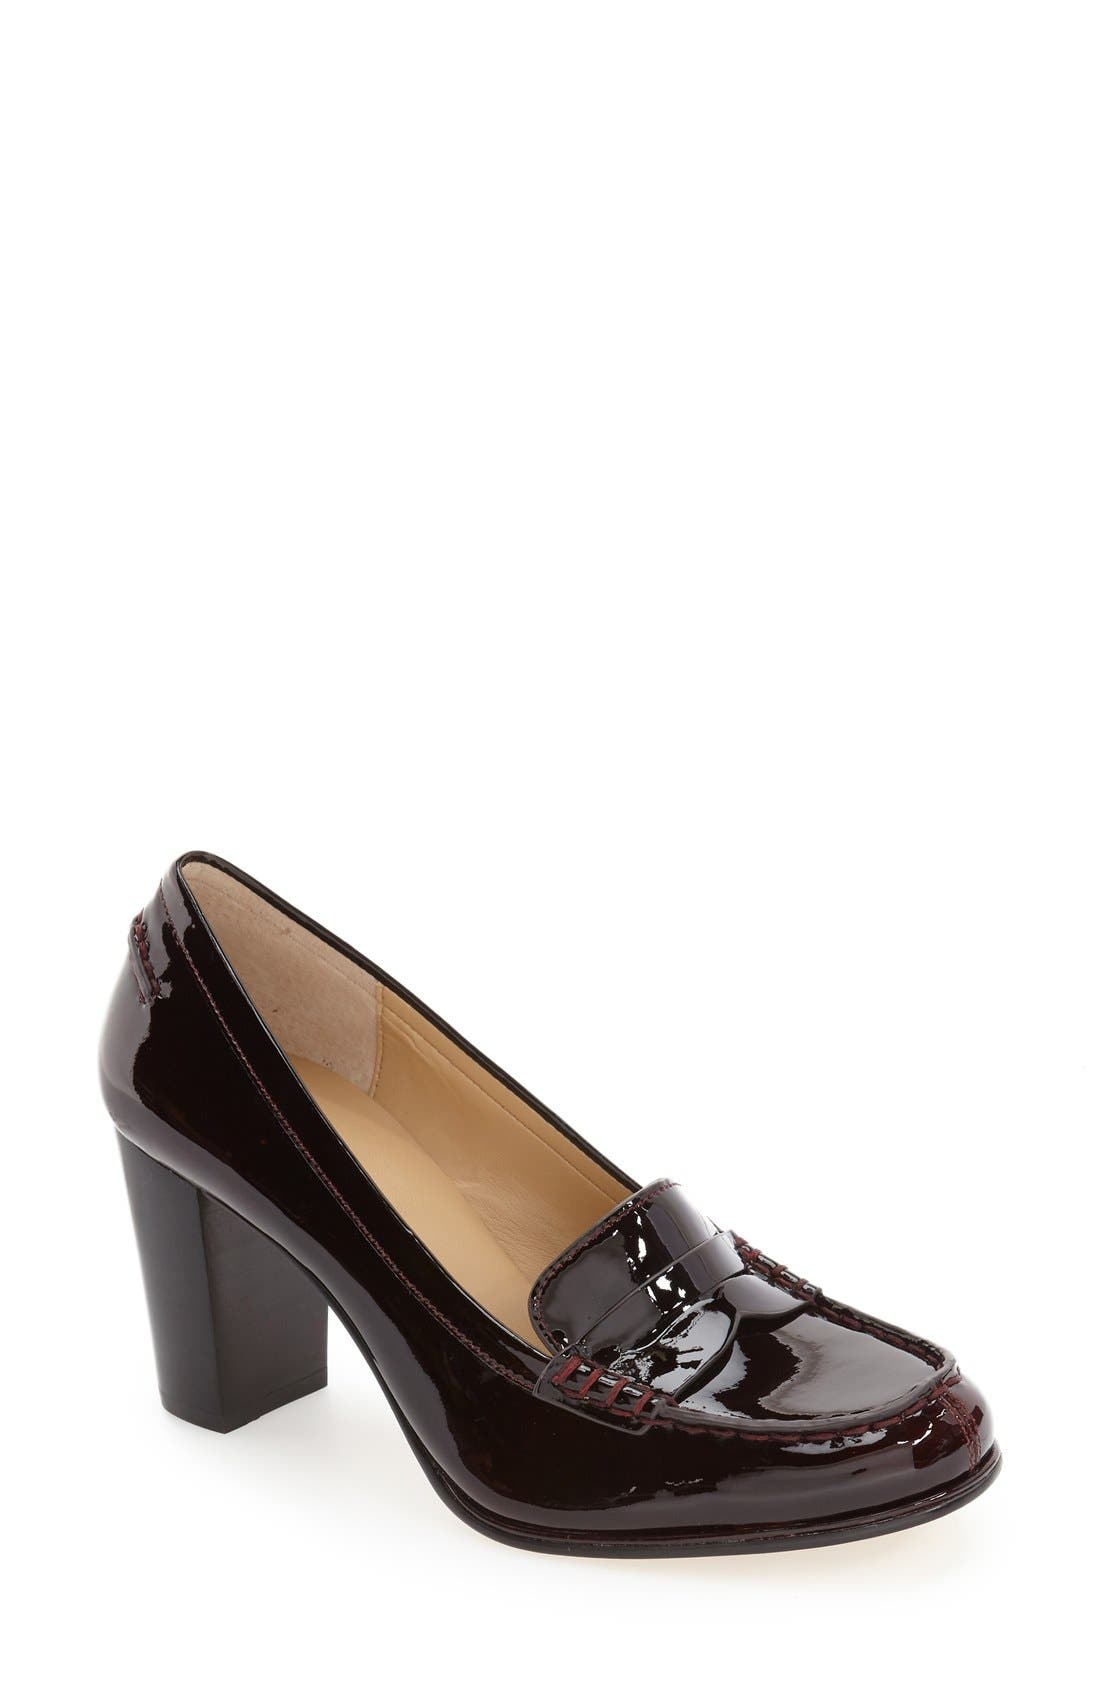 MICHAEL Michael Kors 'Bayville' Loafer Pump